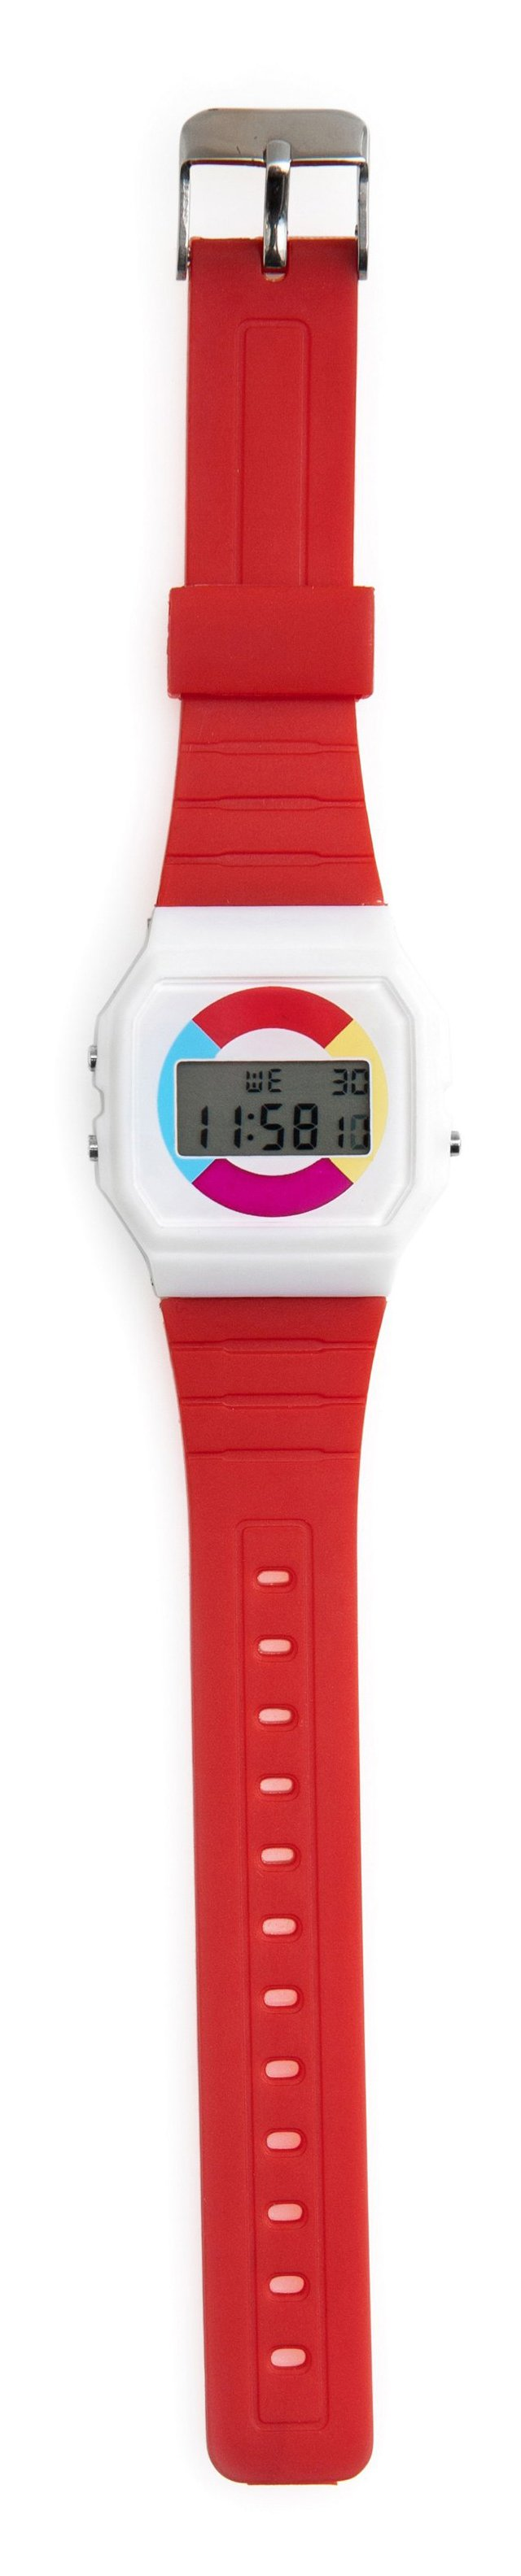 Throwback Colorparty Watch, Red Strap